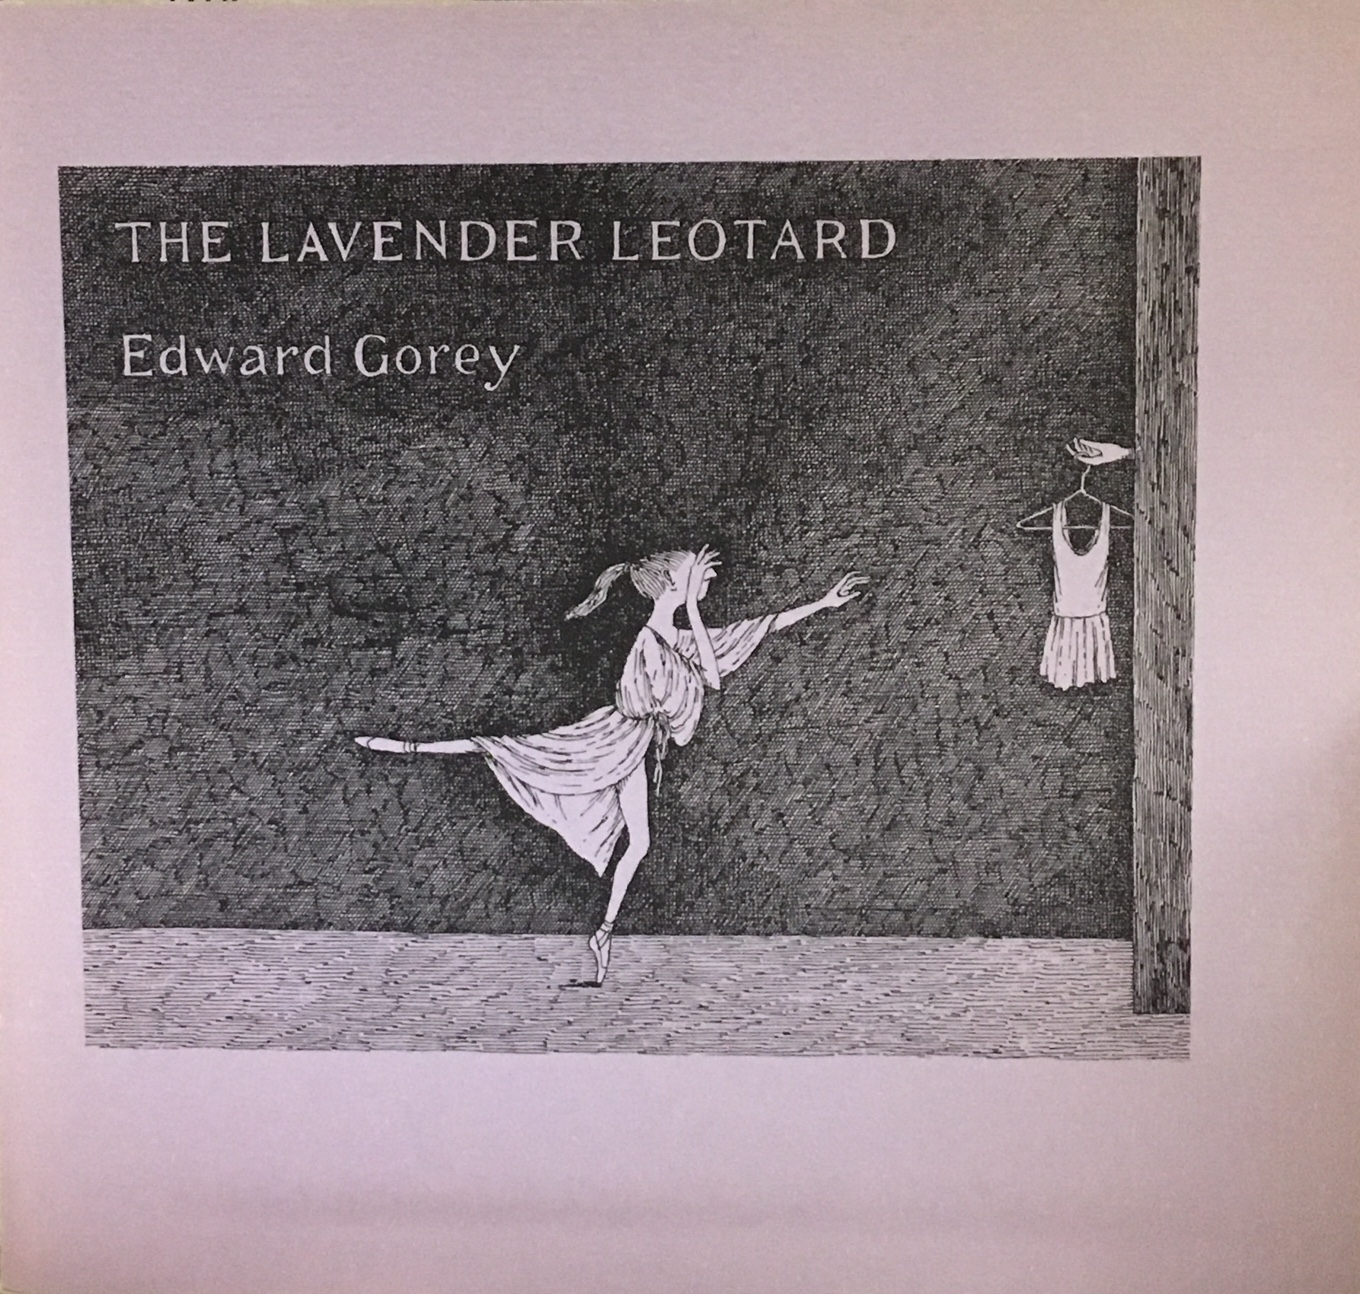 The Lavender Leotard